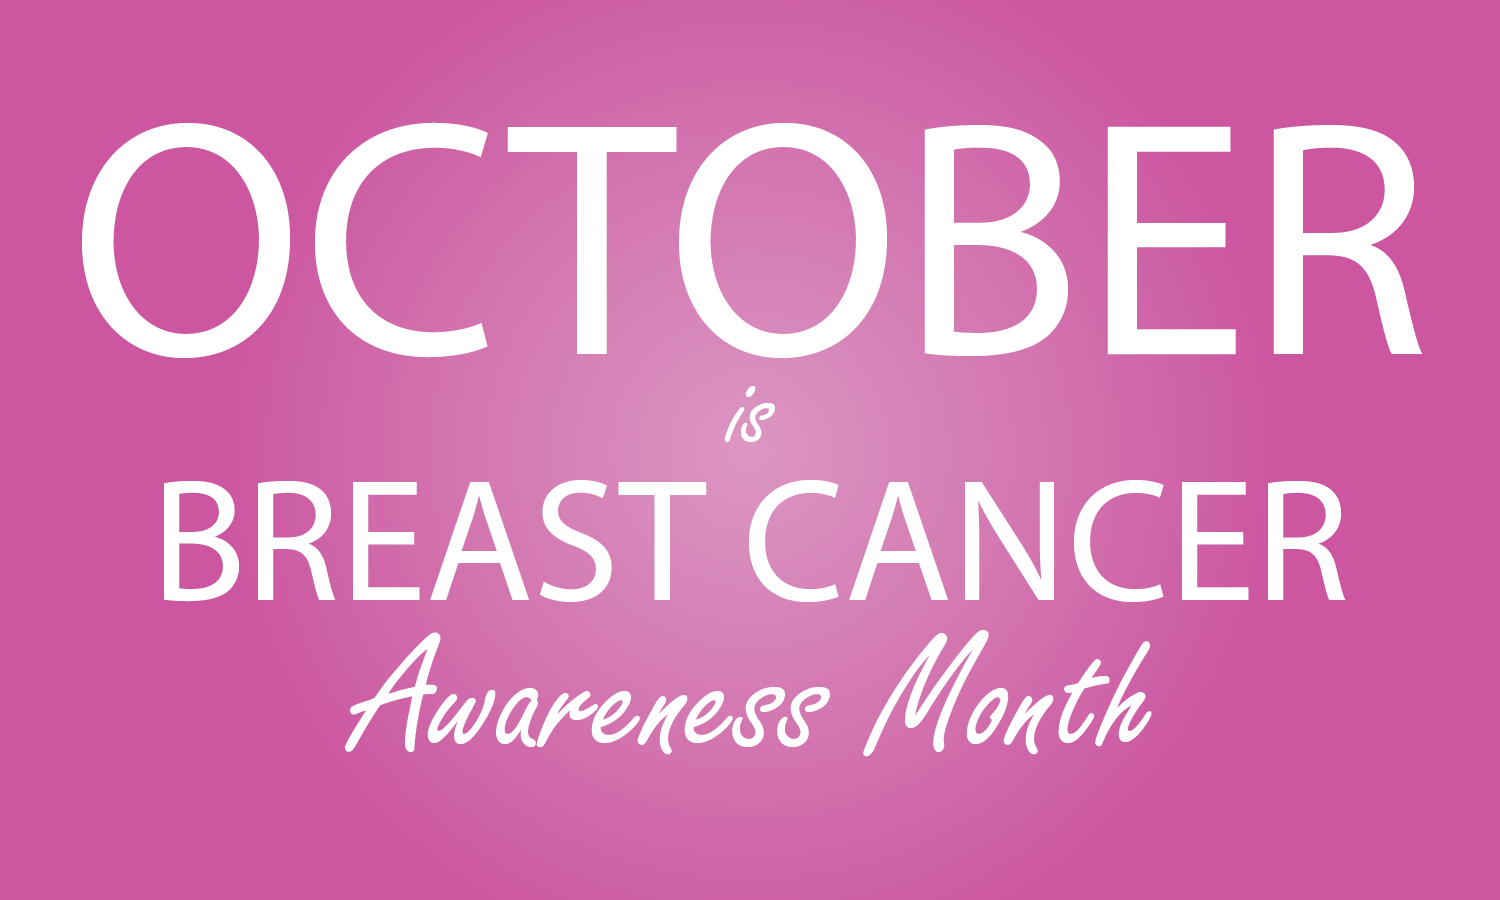 October national breast cancer awareness